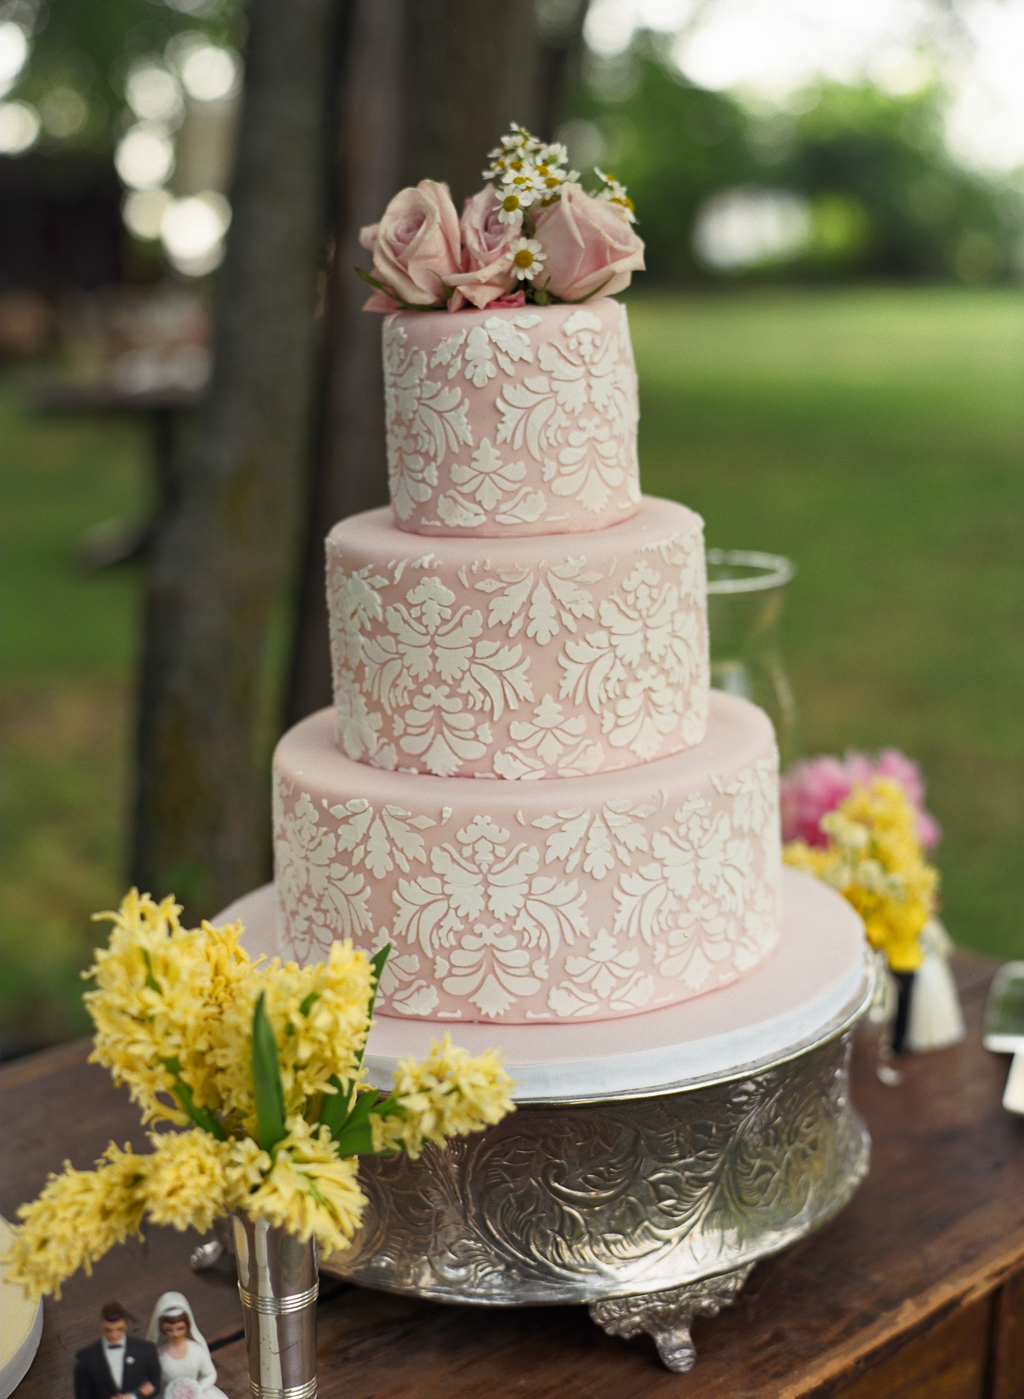 Cake Design Ideas For Wedding : Beautiful Vintage Wedding Cakes Design - Wedding Cakes